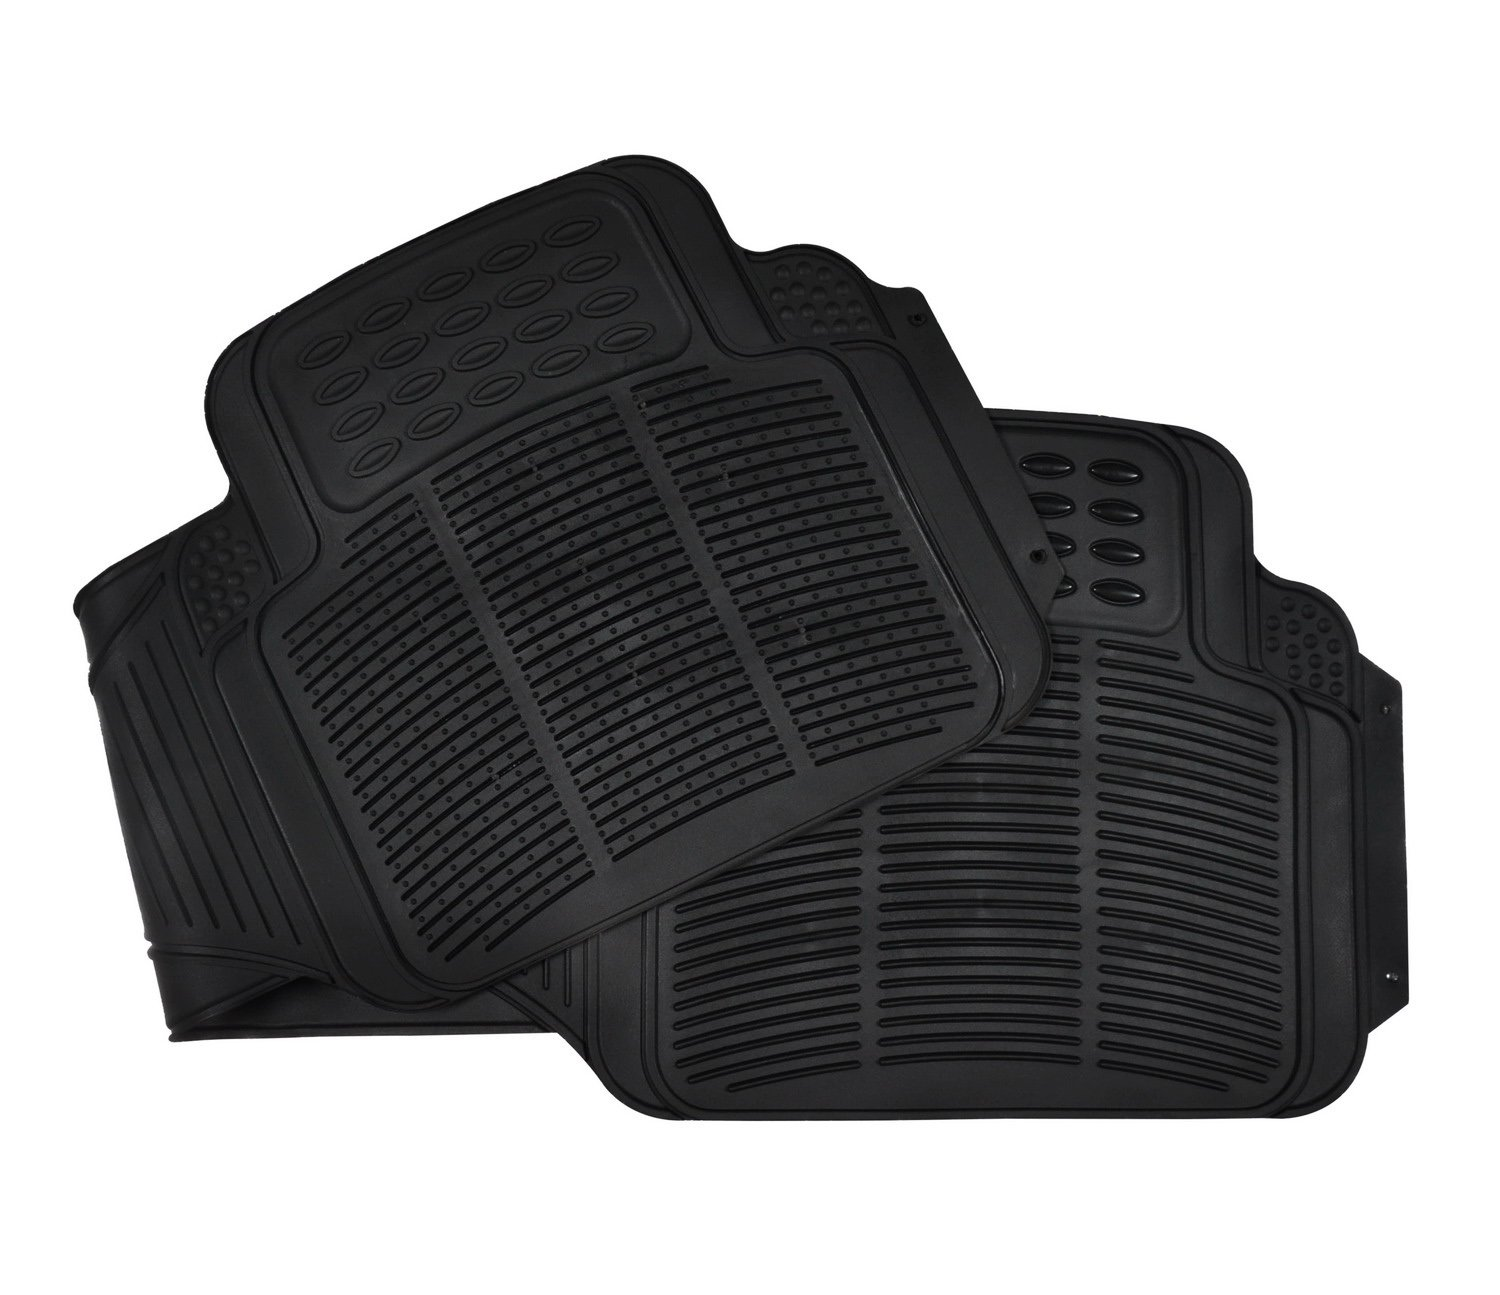 Rubber Car Floor Mats 3-piece Front and Rear All Weather Protection for Car, Truck and SUV